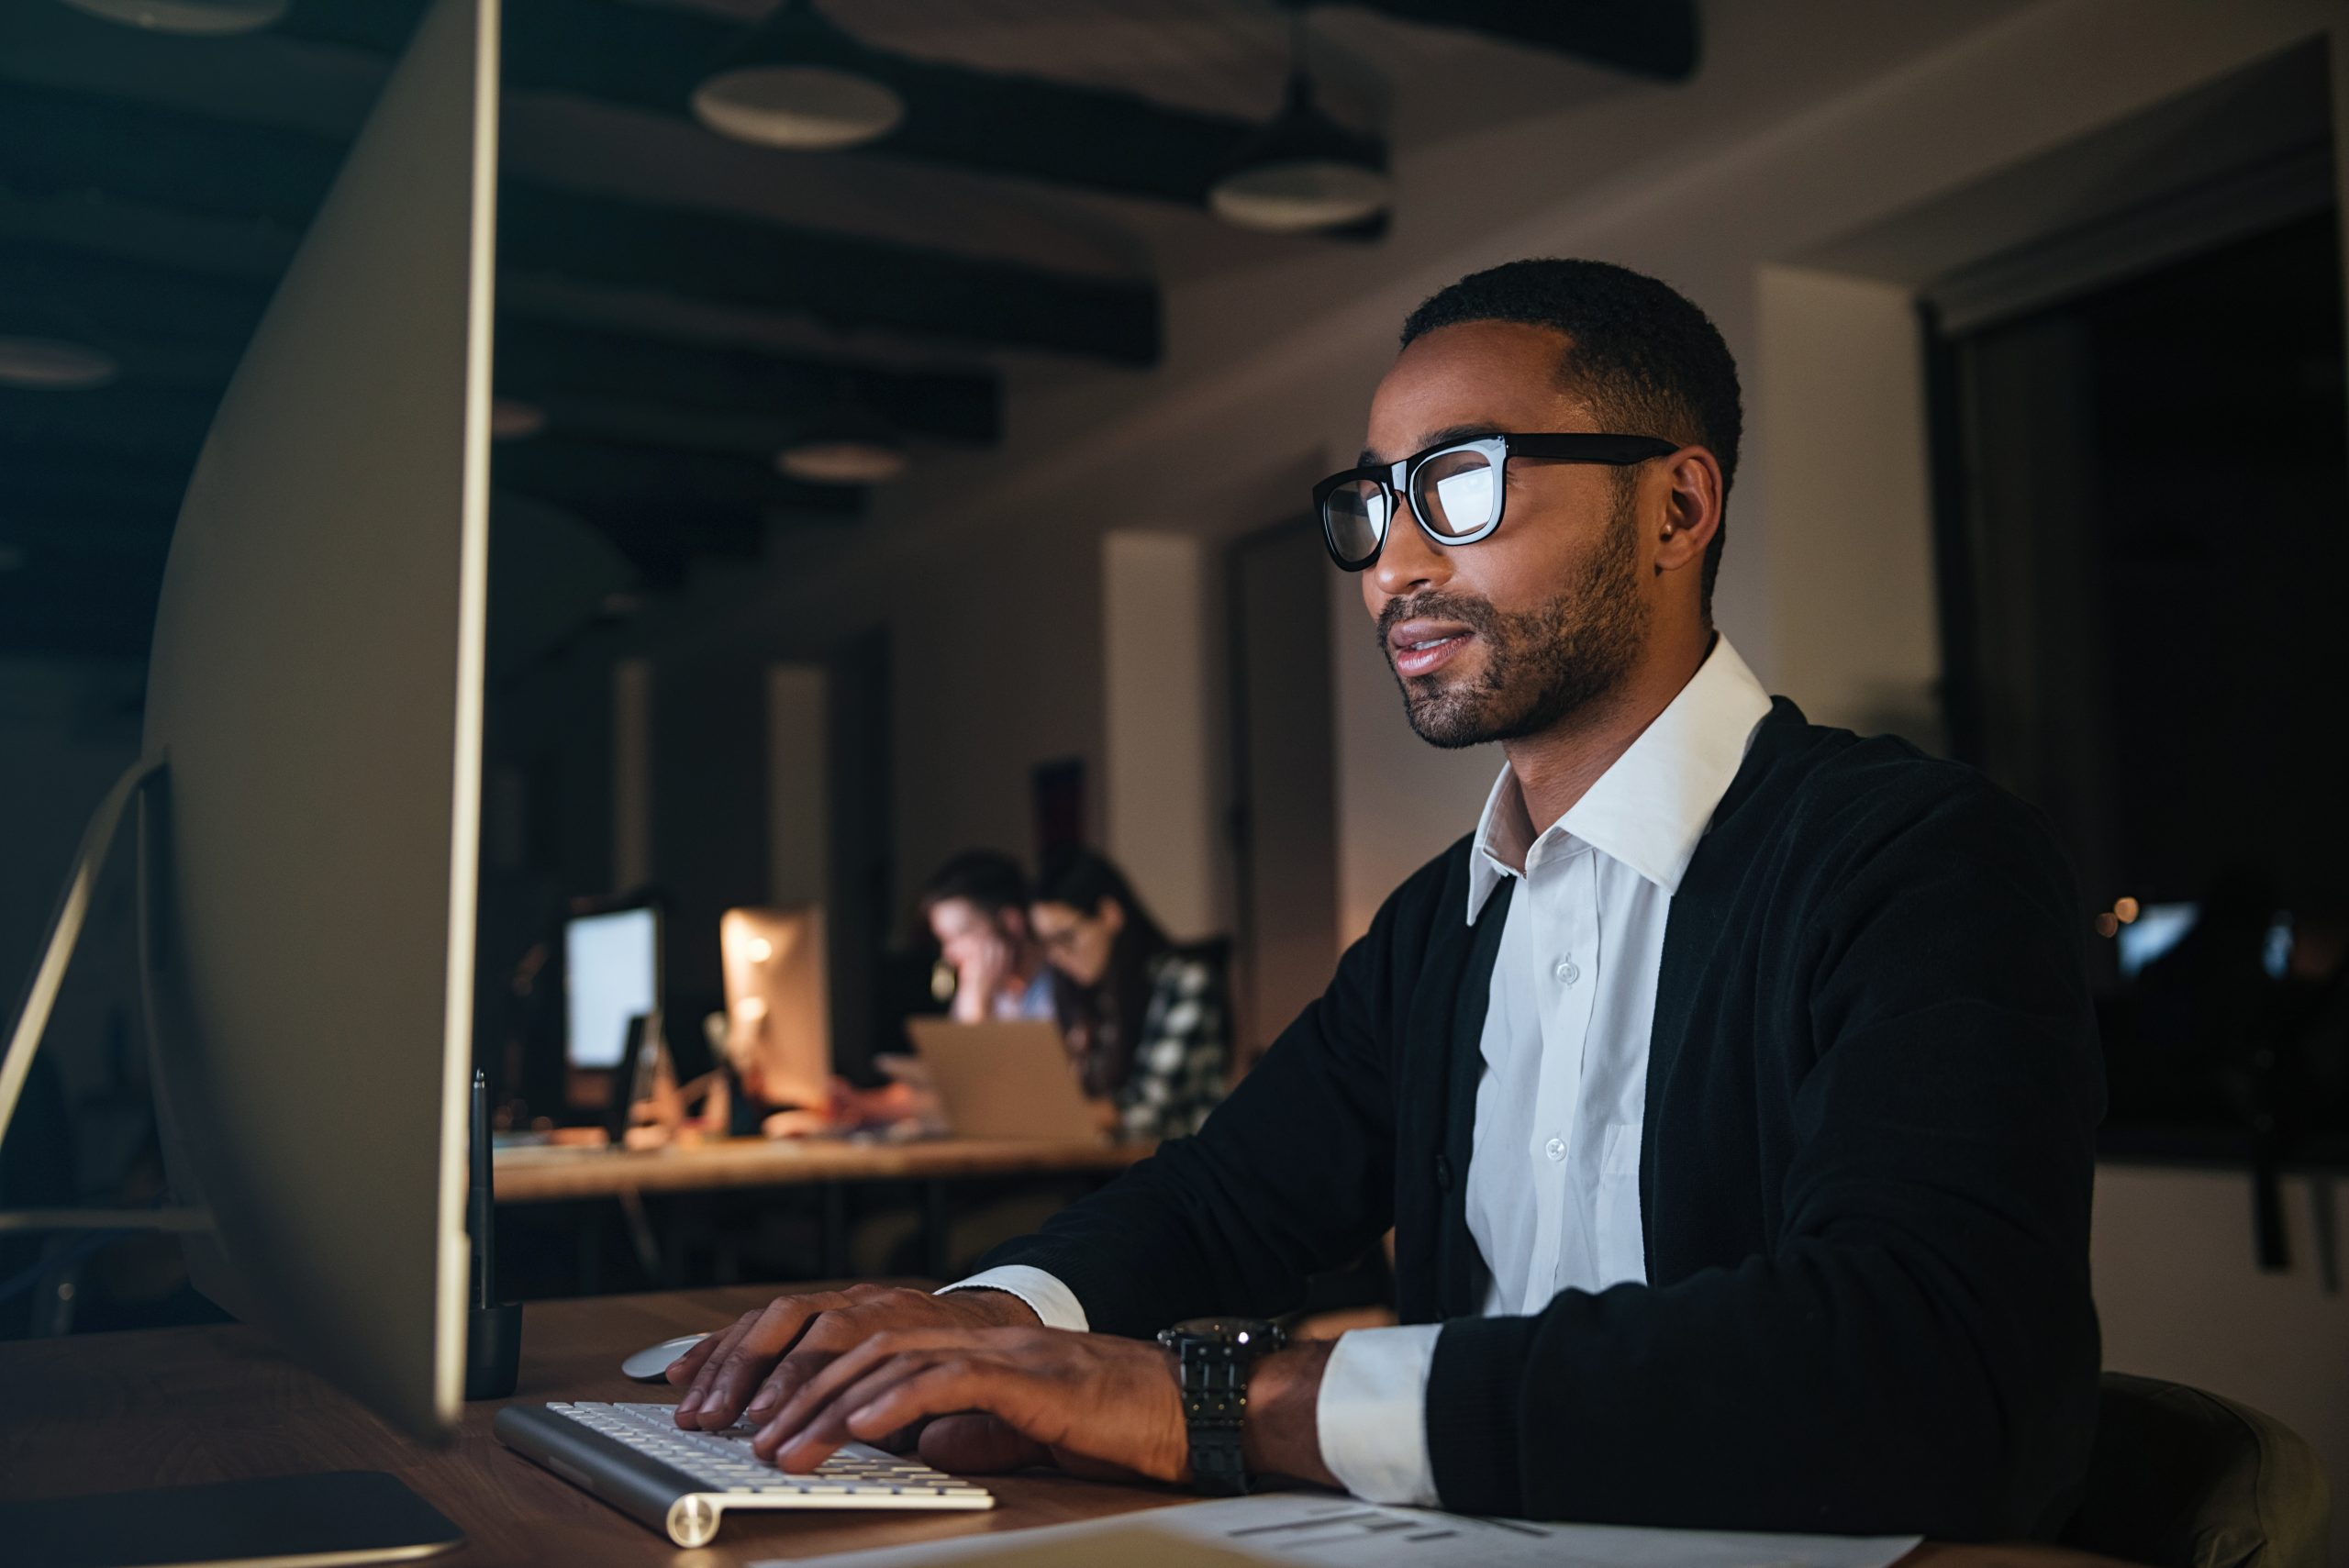 Concentrated dark skinned businessman working late at night in office with computer.